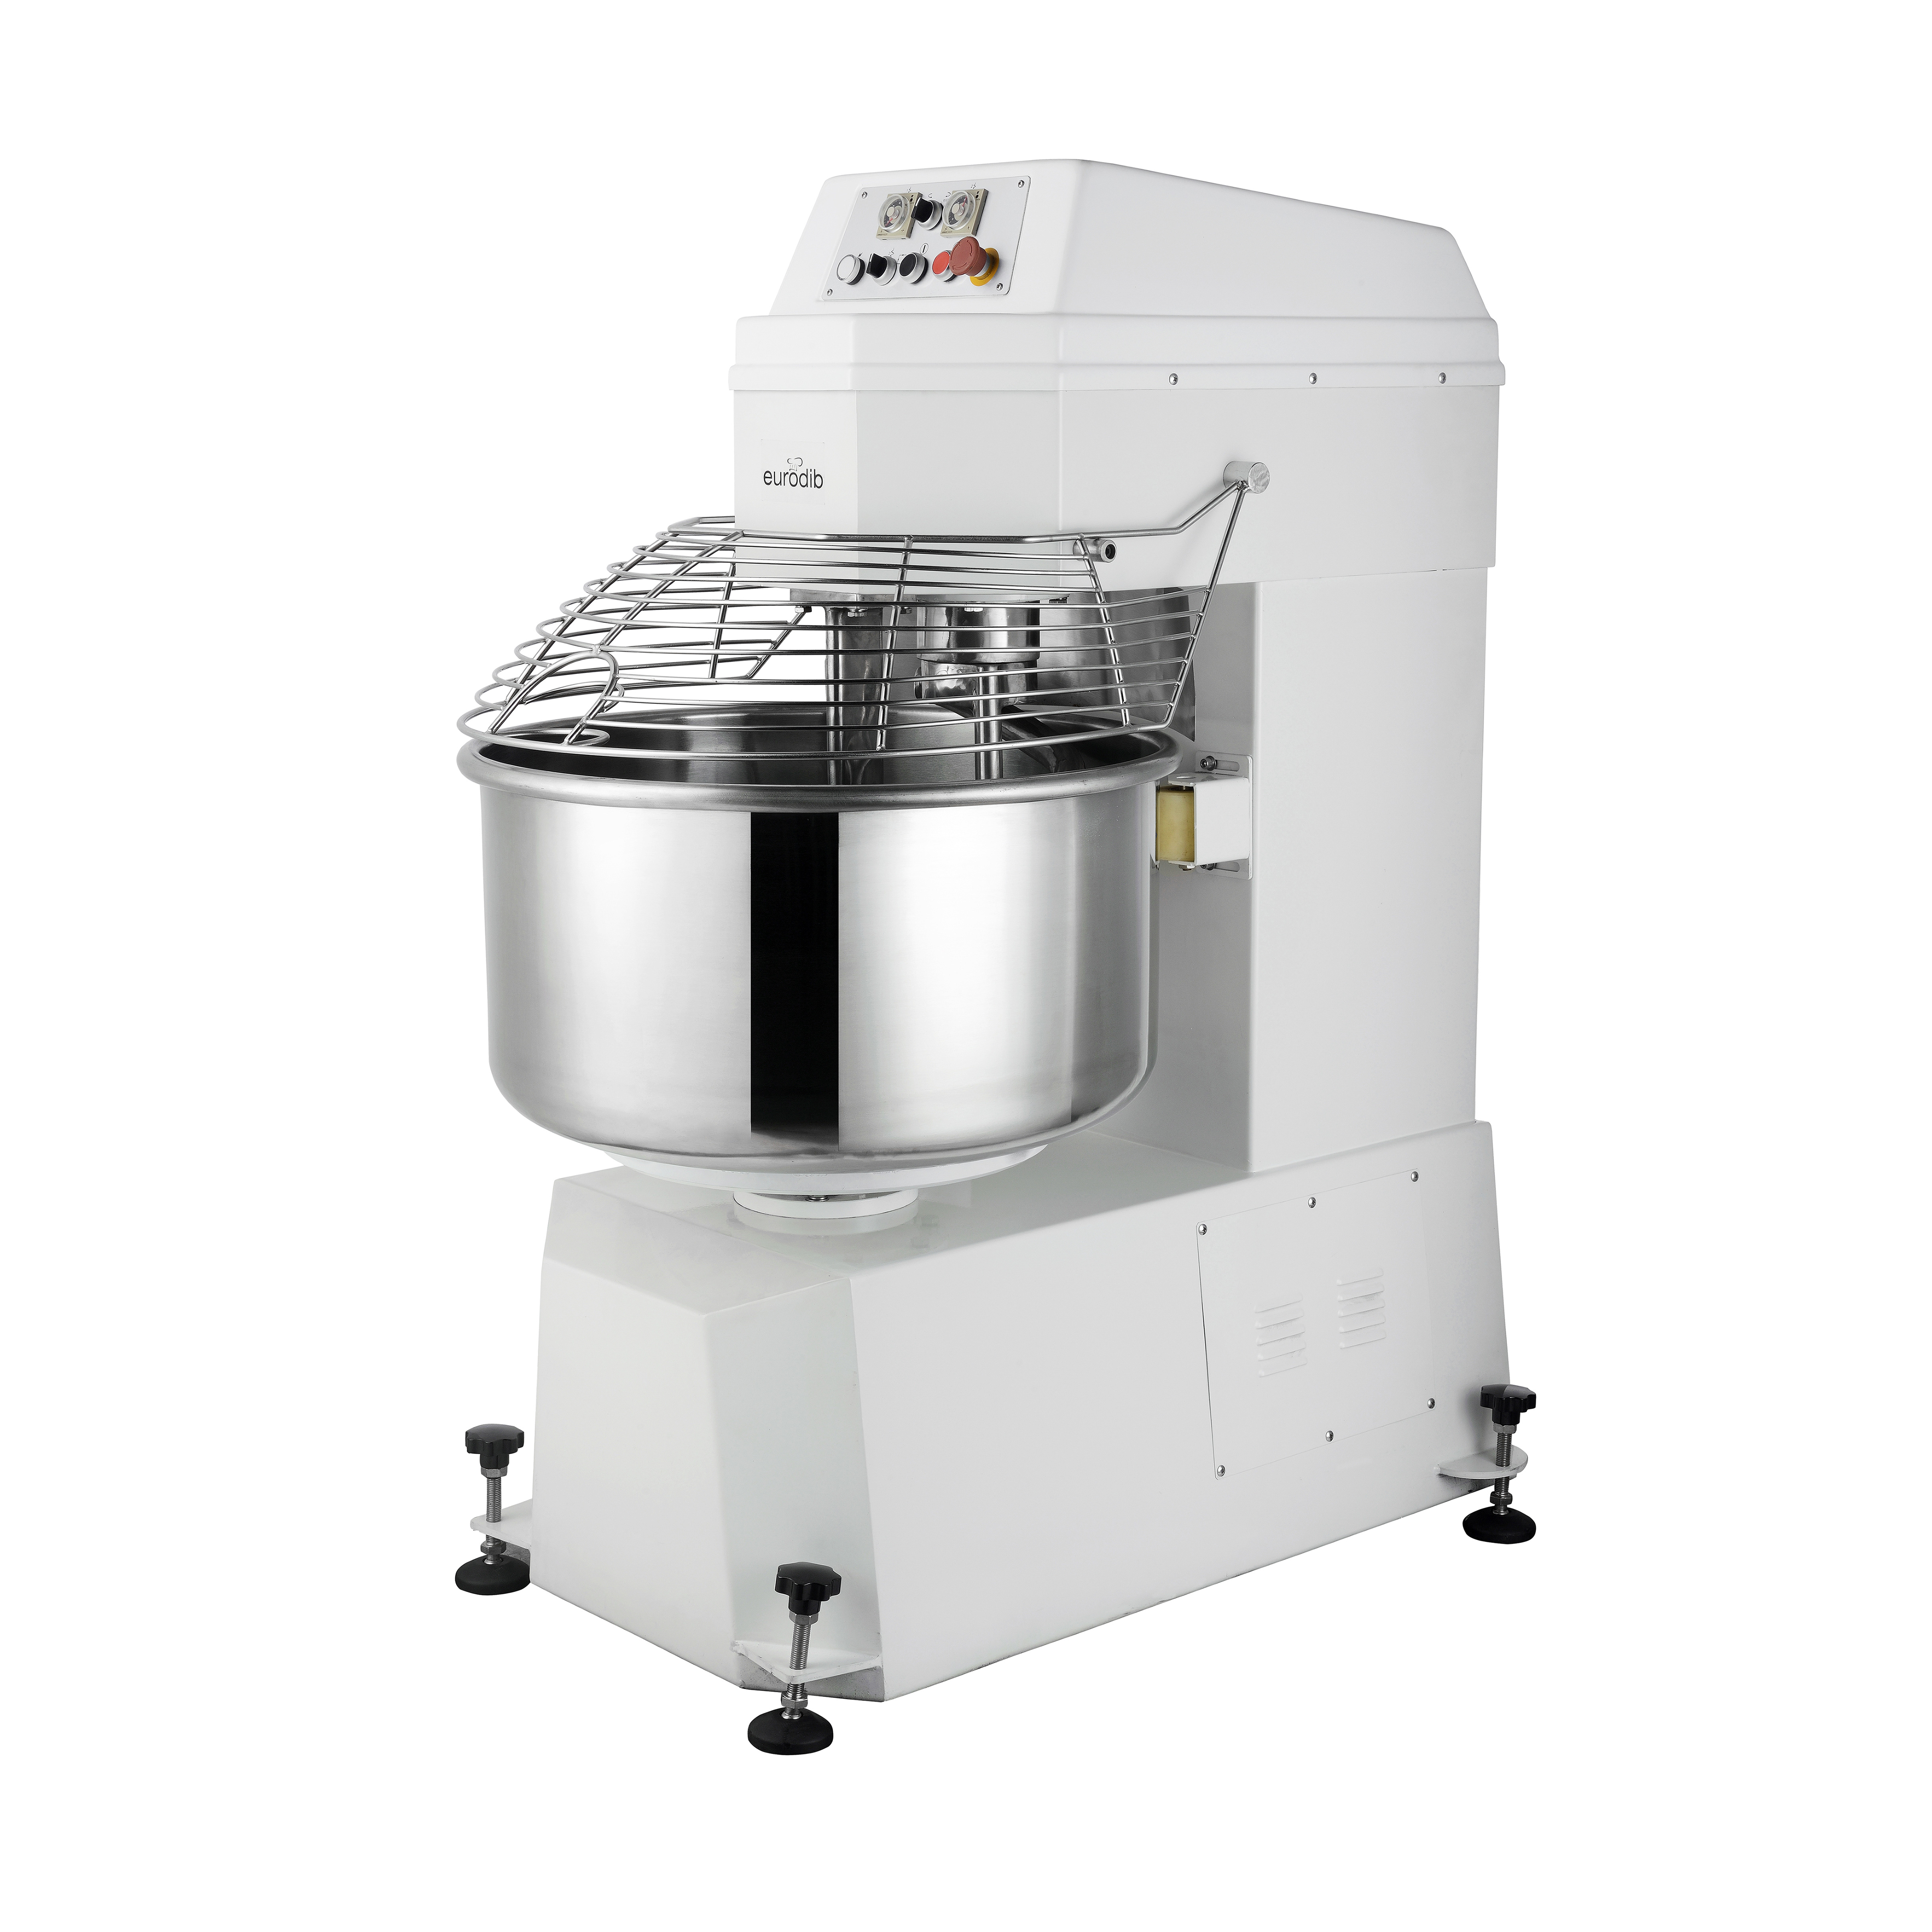 Eurodib USA LR GM50B mixer, spiral dough